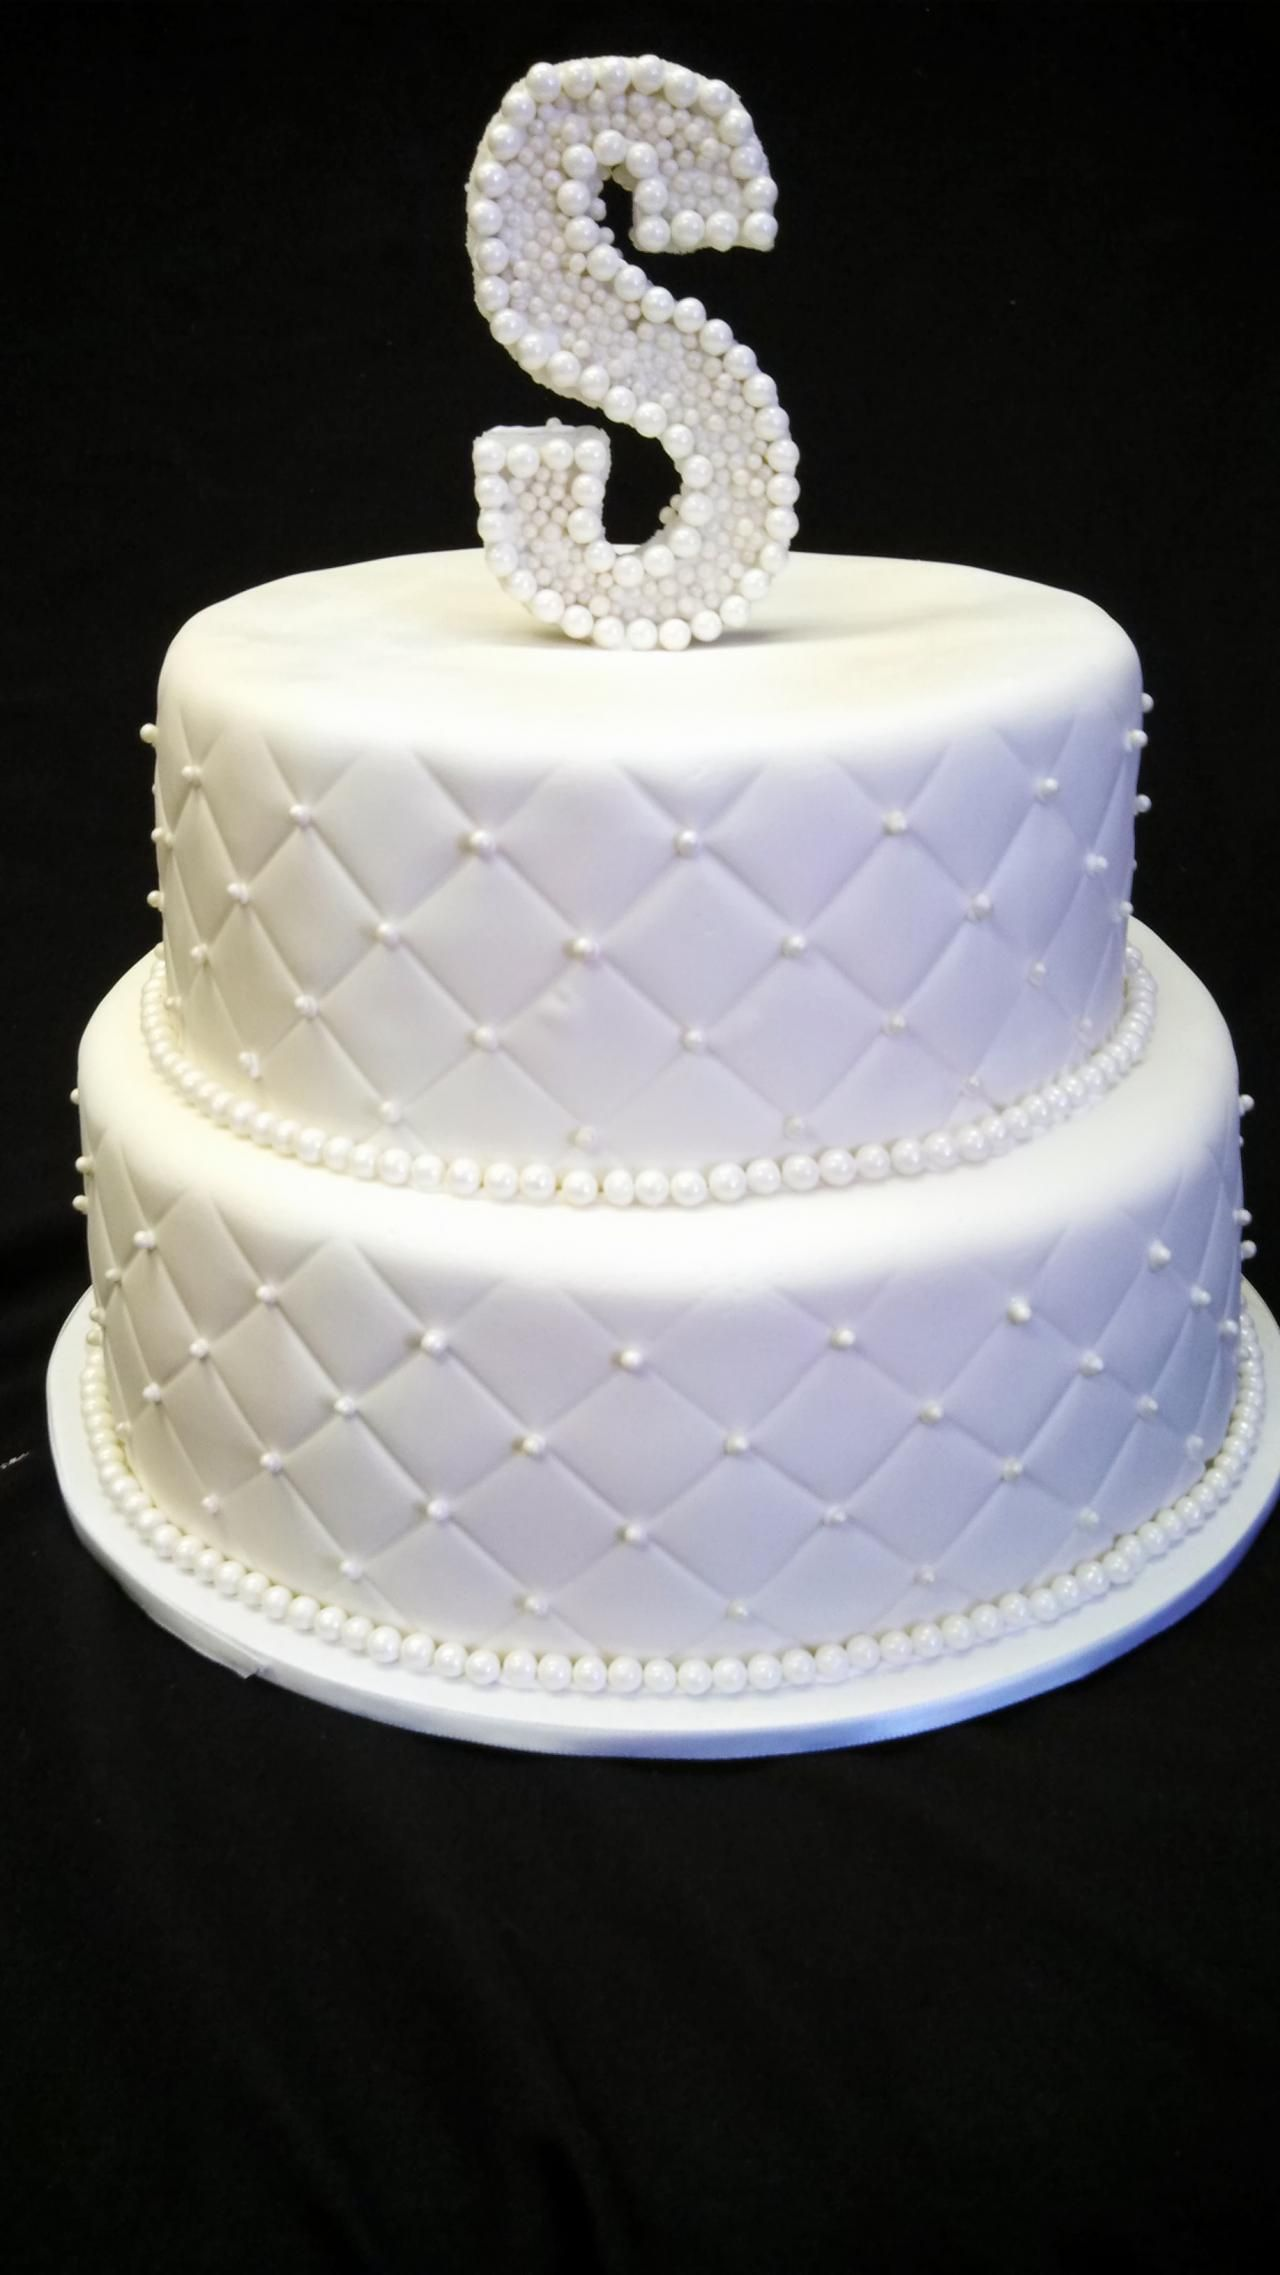 Diamond and Pearls Cake ... white, diamond pattern, pearl accents ...